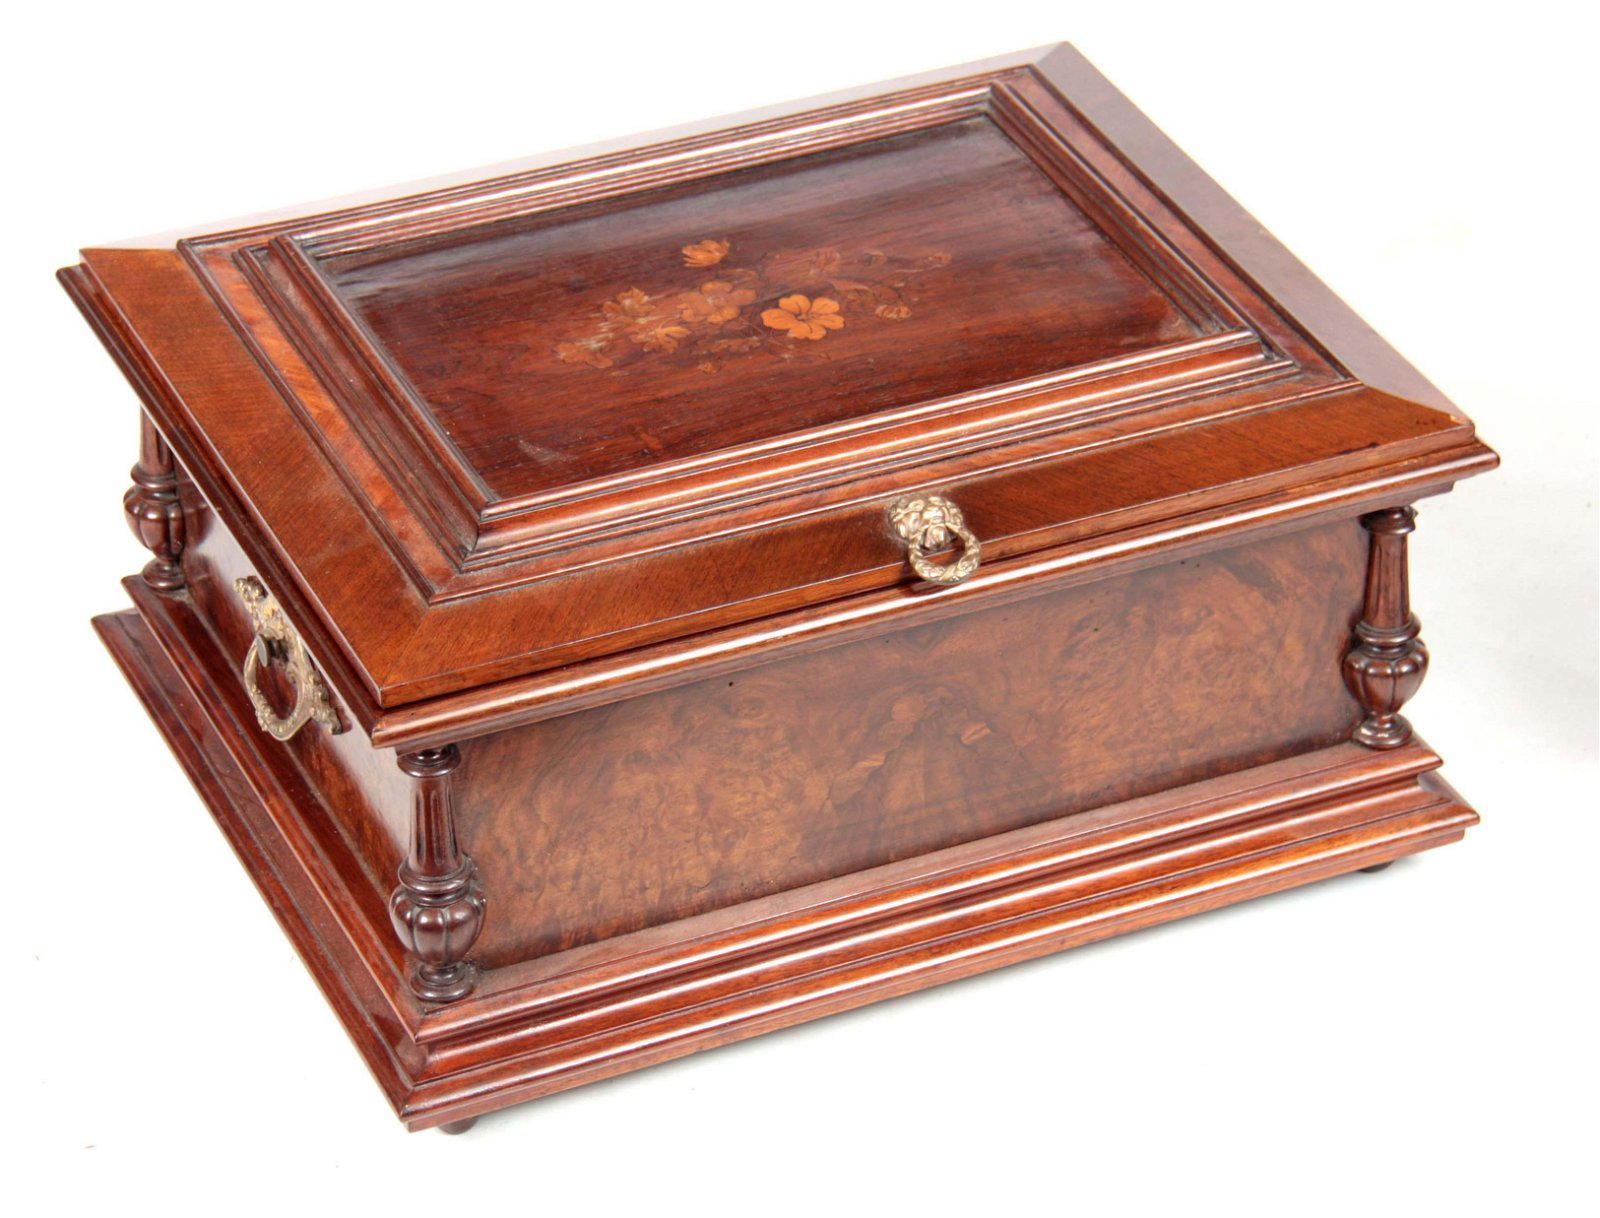 A LATE 19th CENTURY WALNUT AND MARQUETRY INLAID SY